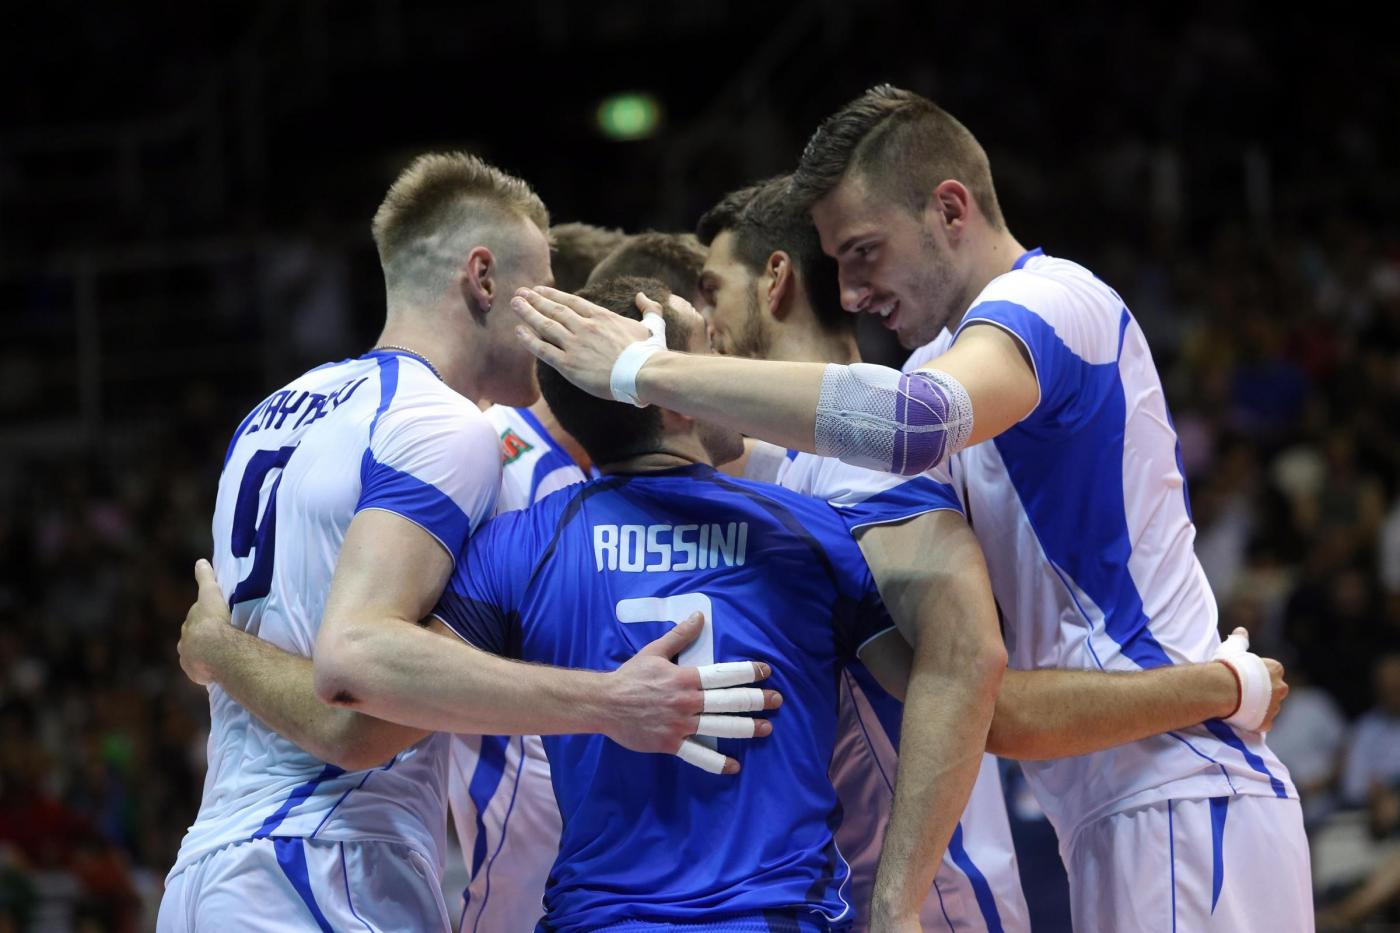 Volley, World League 2014: Italia terza dietro USA e Brasile